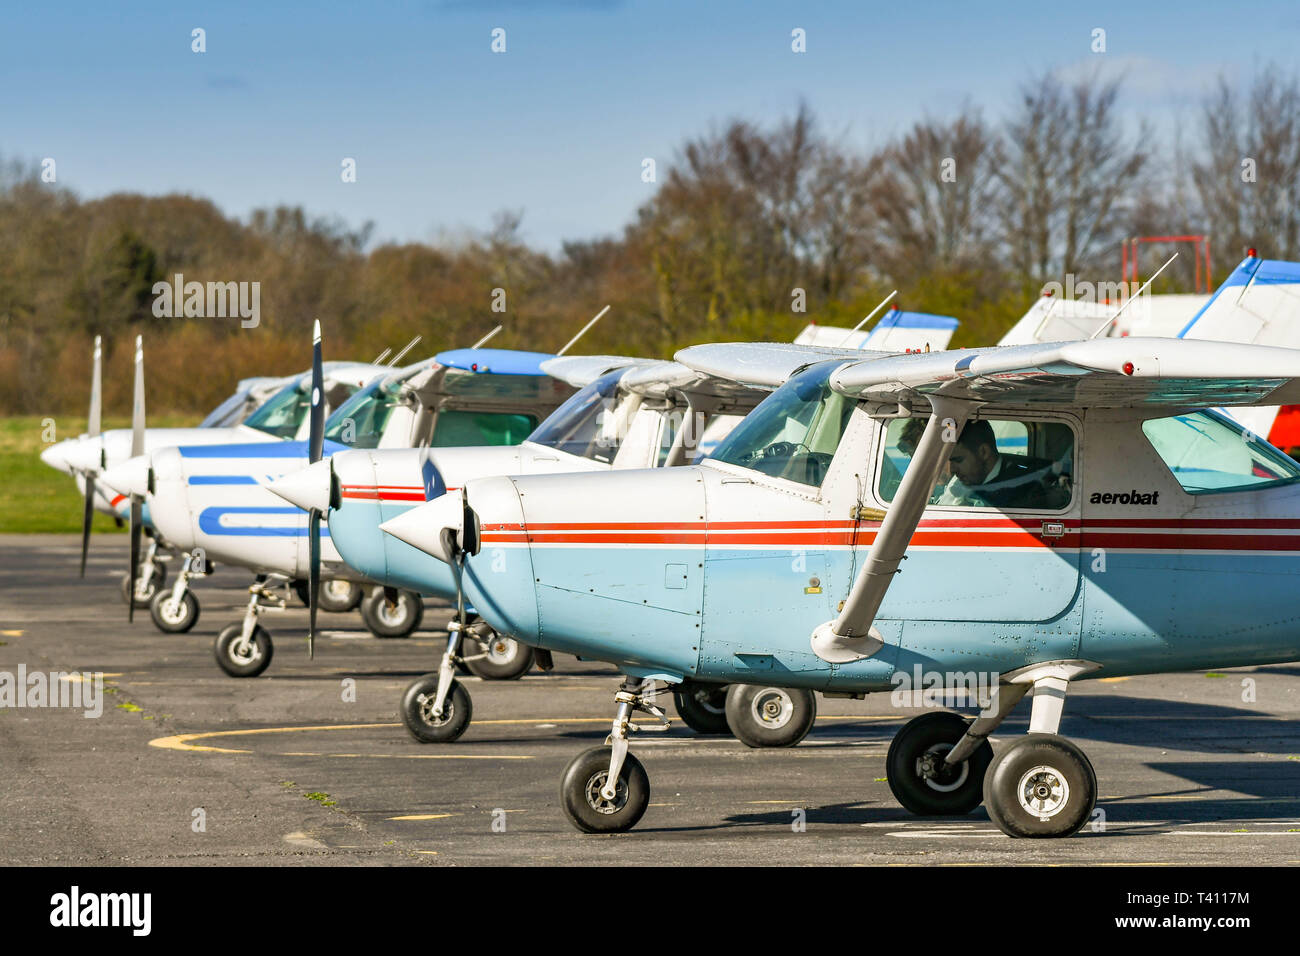 HIGH WYCOMBE, ENGLAND - MARCH 2019: Cessna Aerobat light trainer aircraft parked in a line at Wycombe Air Park. - Stock Image